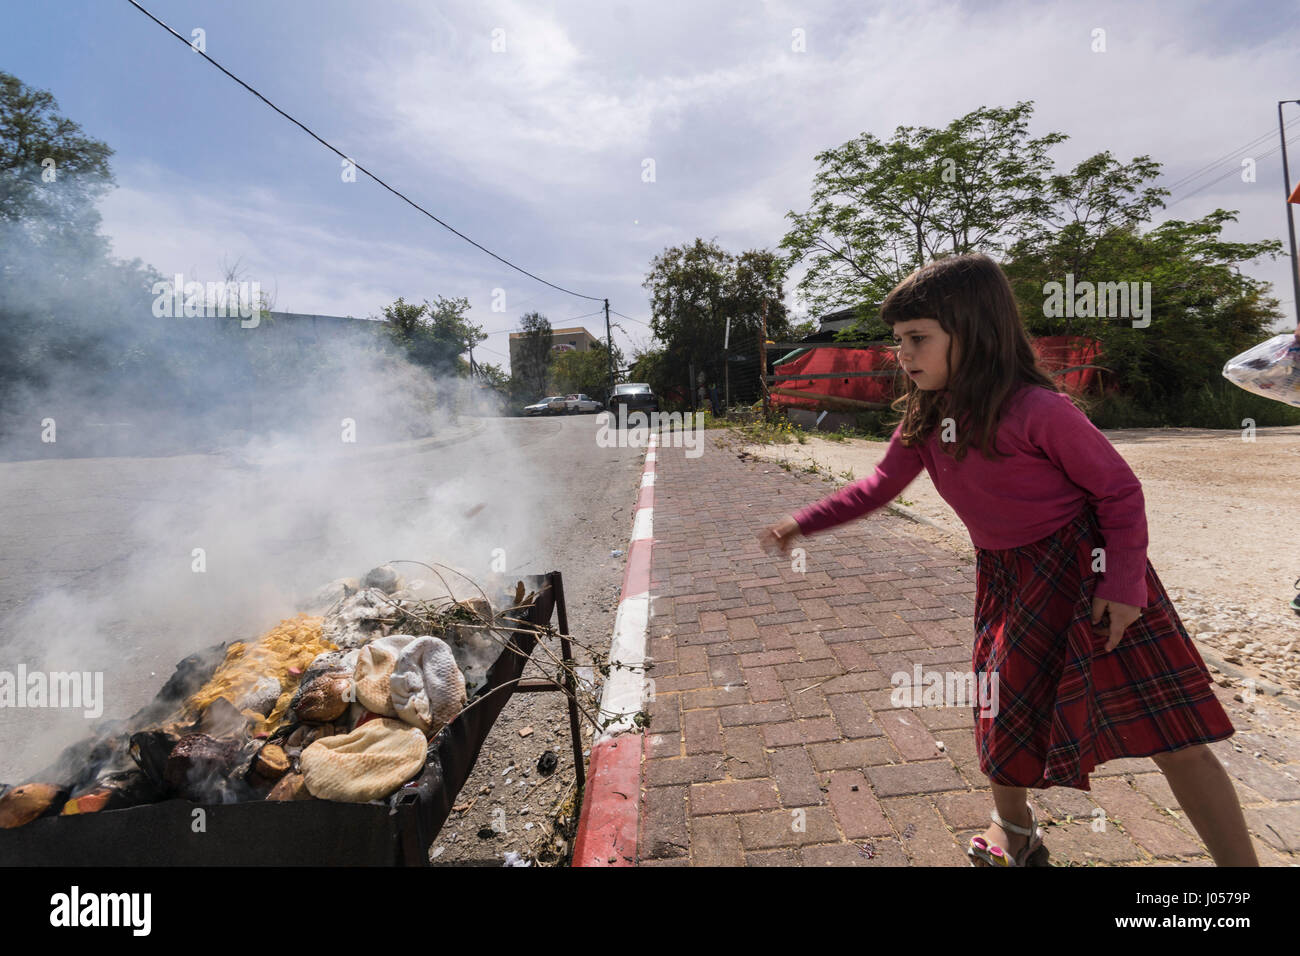 Elkana, Israel. 10th April, 2017. Jewish Orthodox girl burns breads, wheat and flour, as part of the preperations - Stock Image